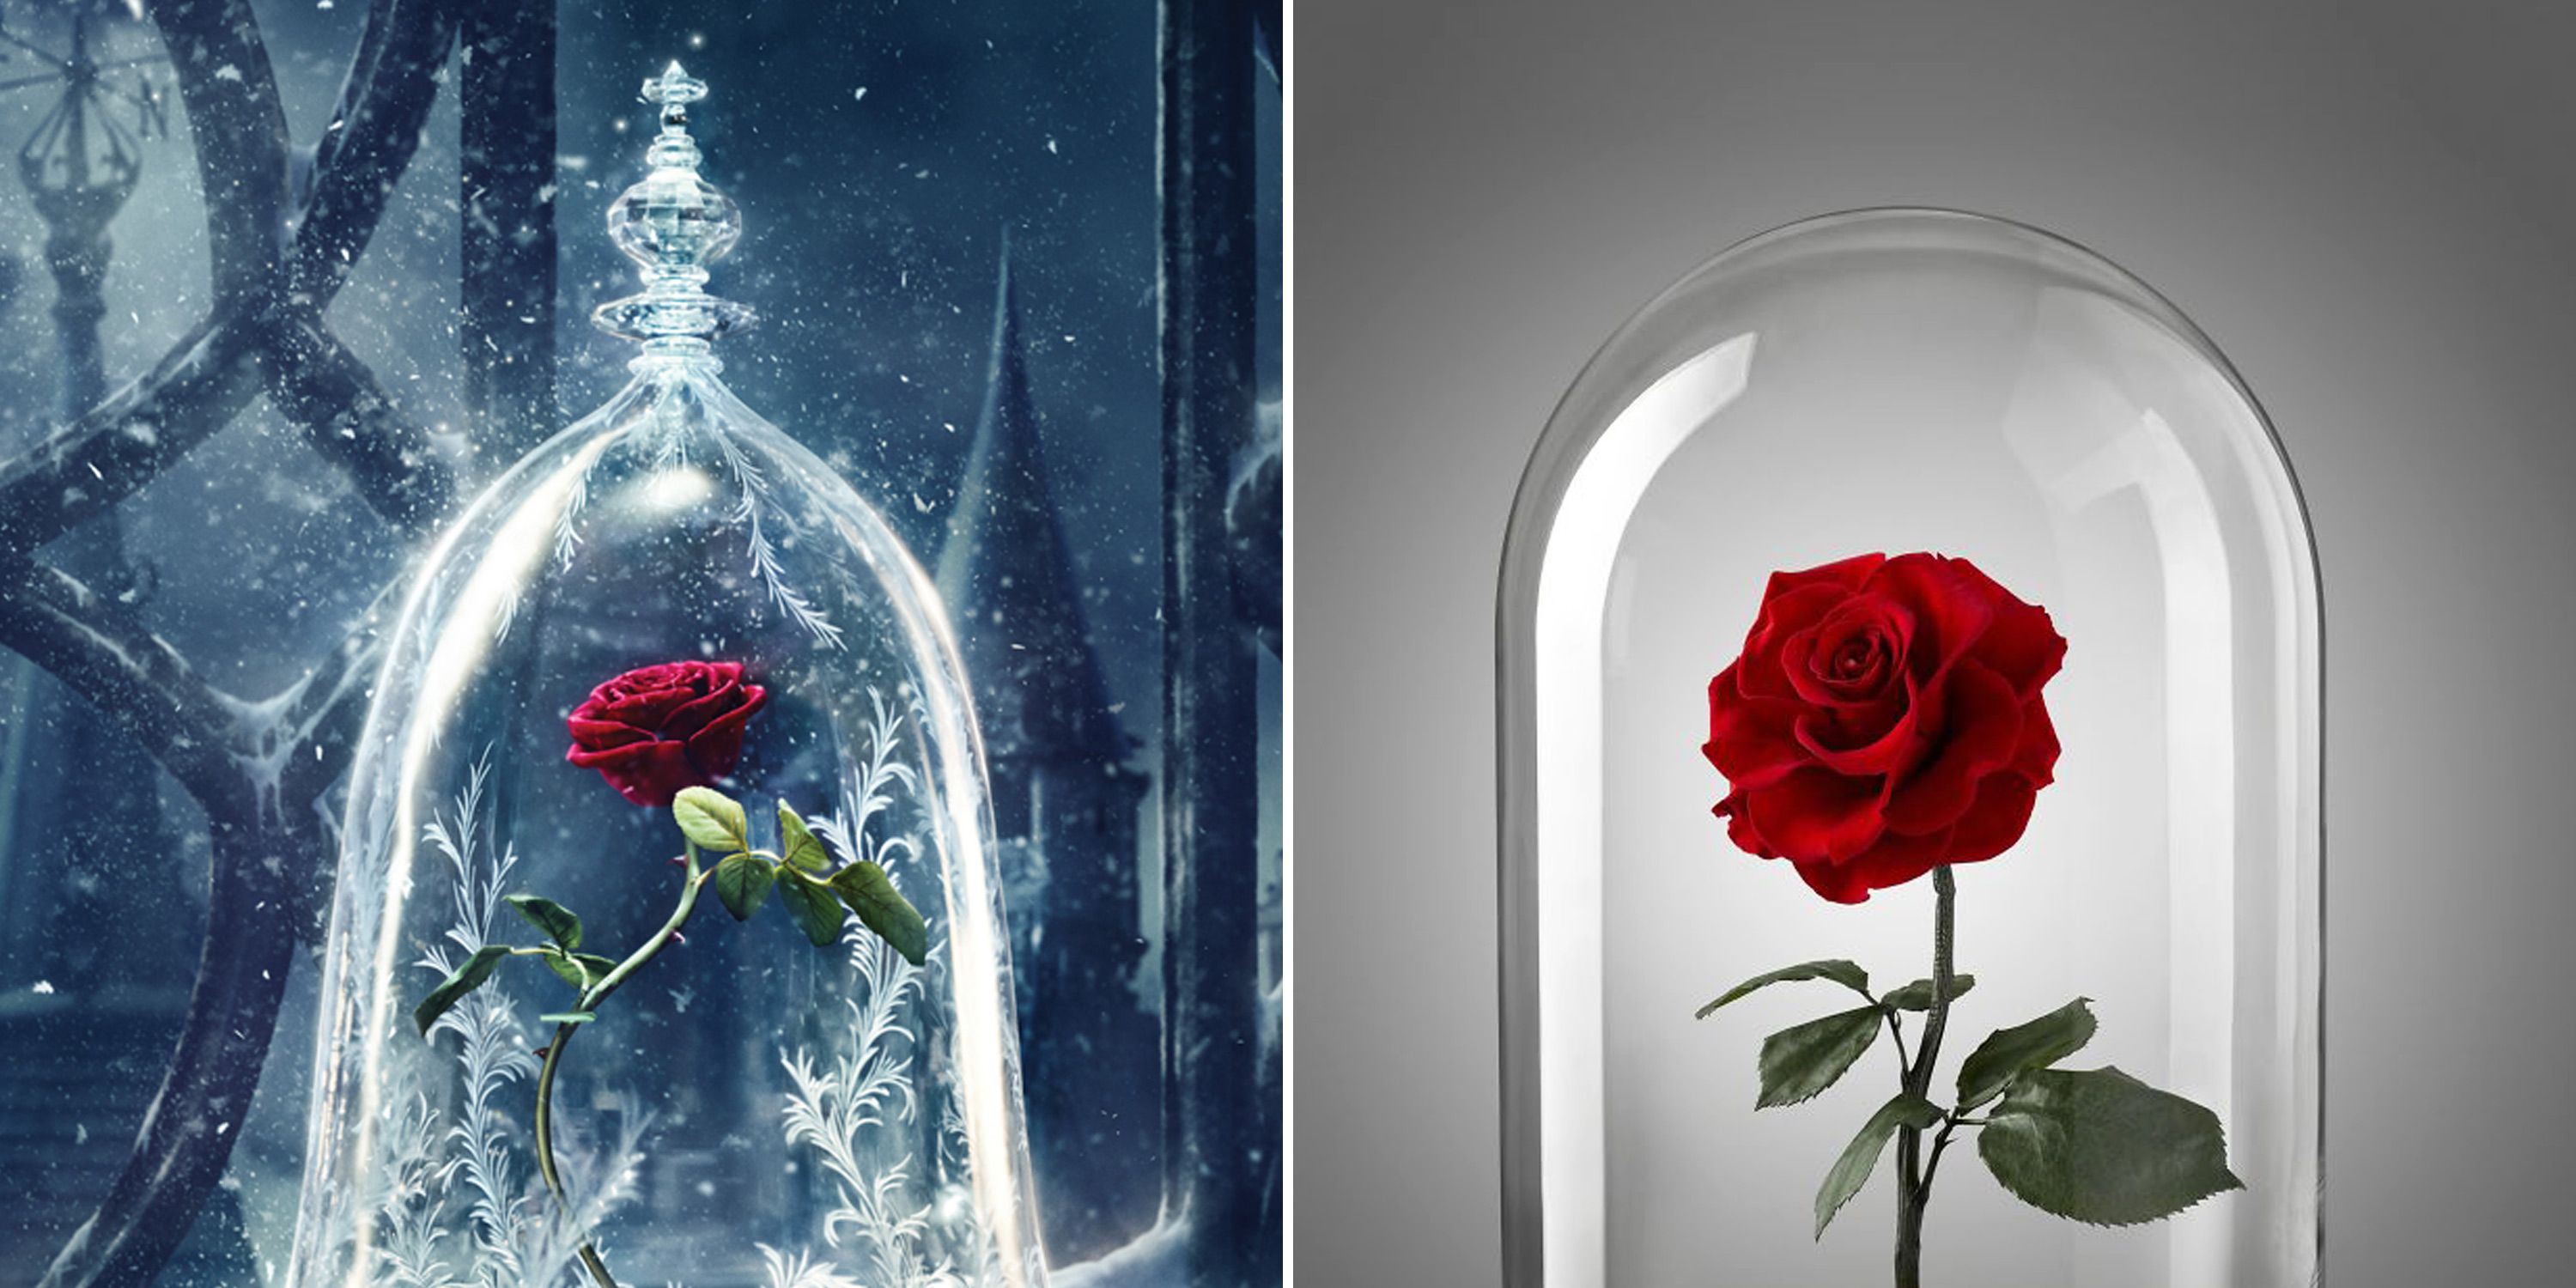 Beauty and the Beast inspired rose